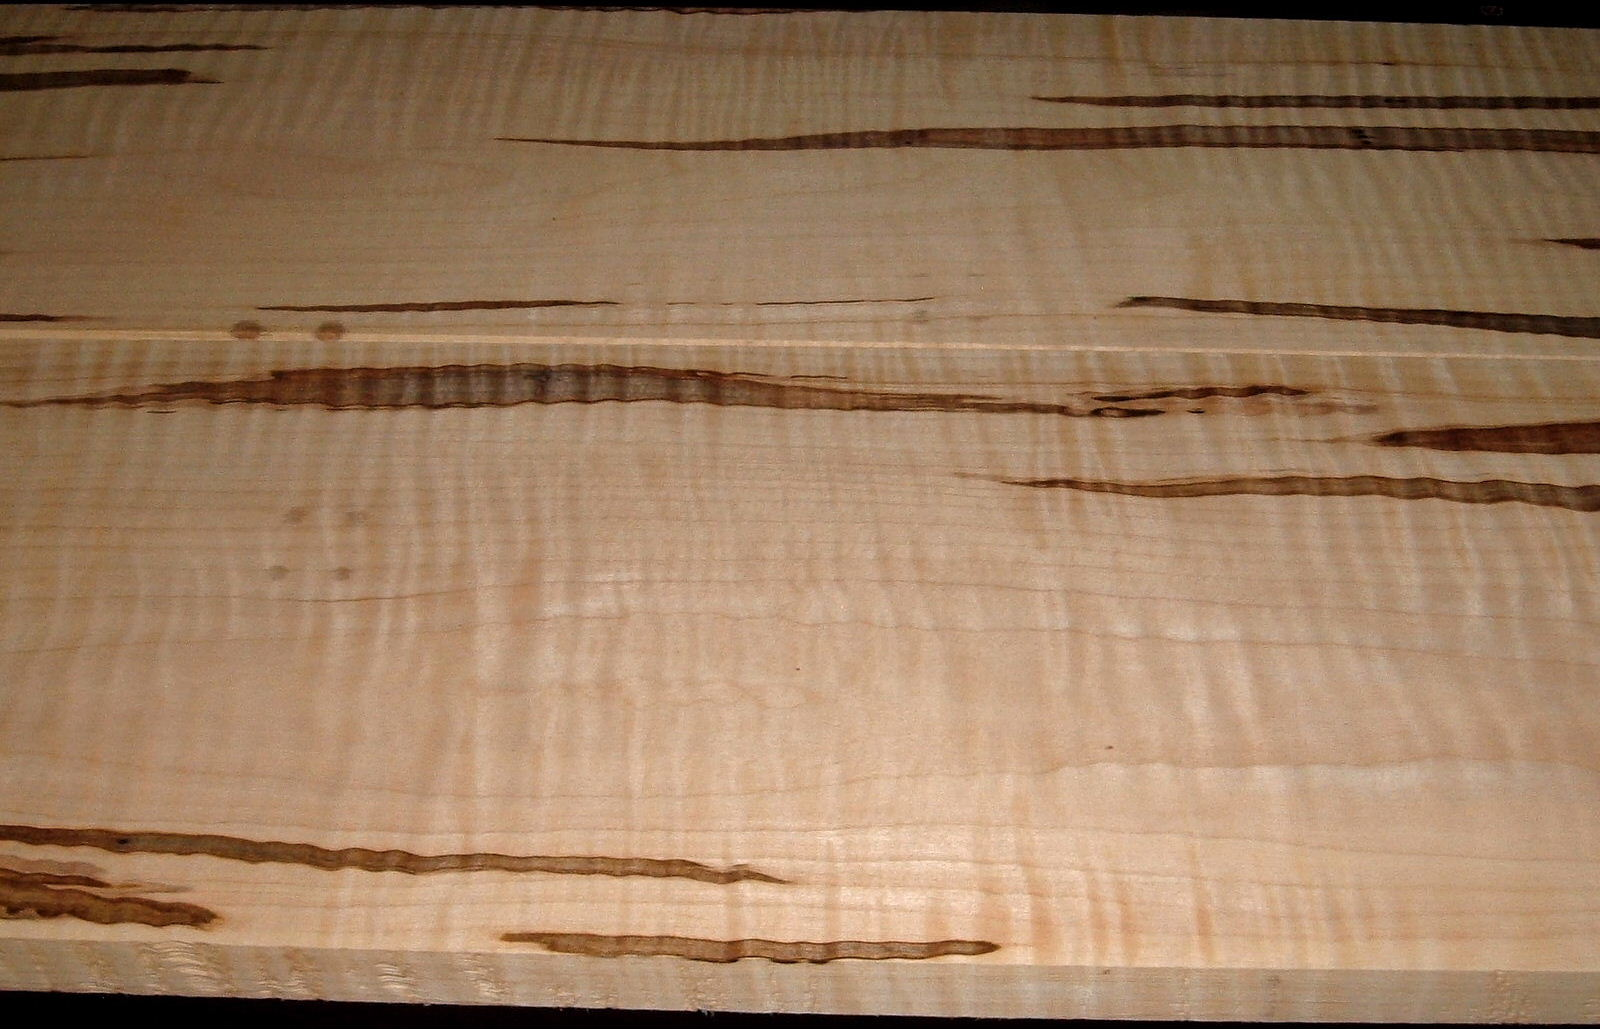 AM2005-95, 2bds, +7/8x8-3/4x55, 7/8x9-3/4x55, Curly Tiger Ambrosia Wormy Maple